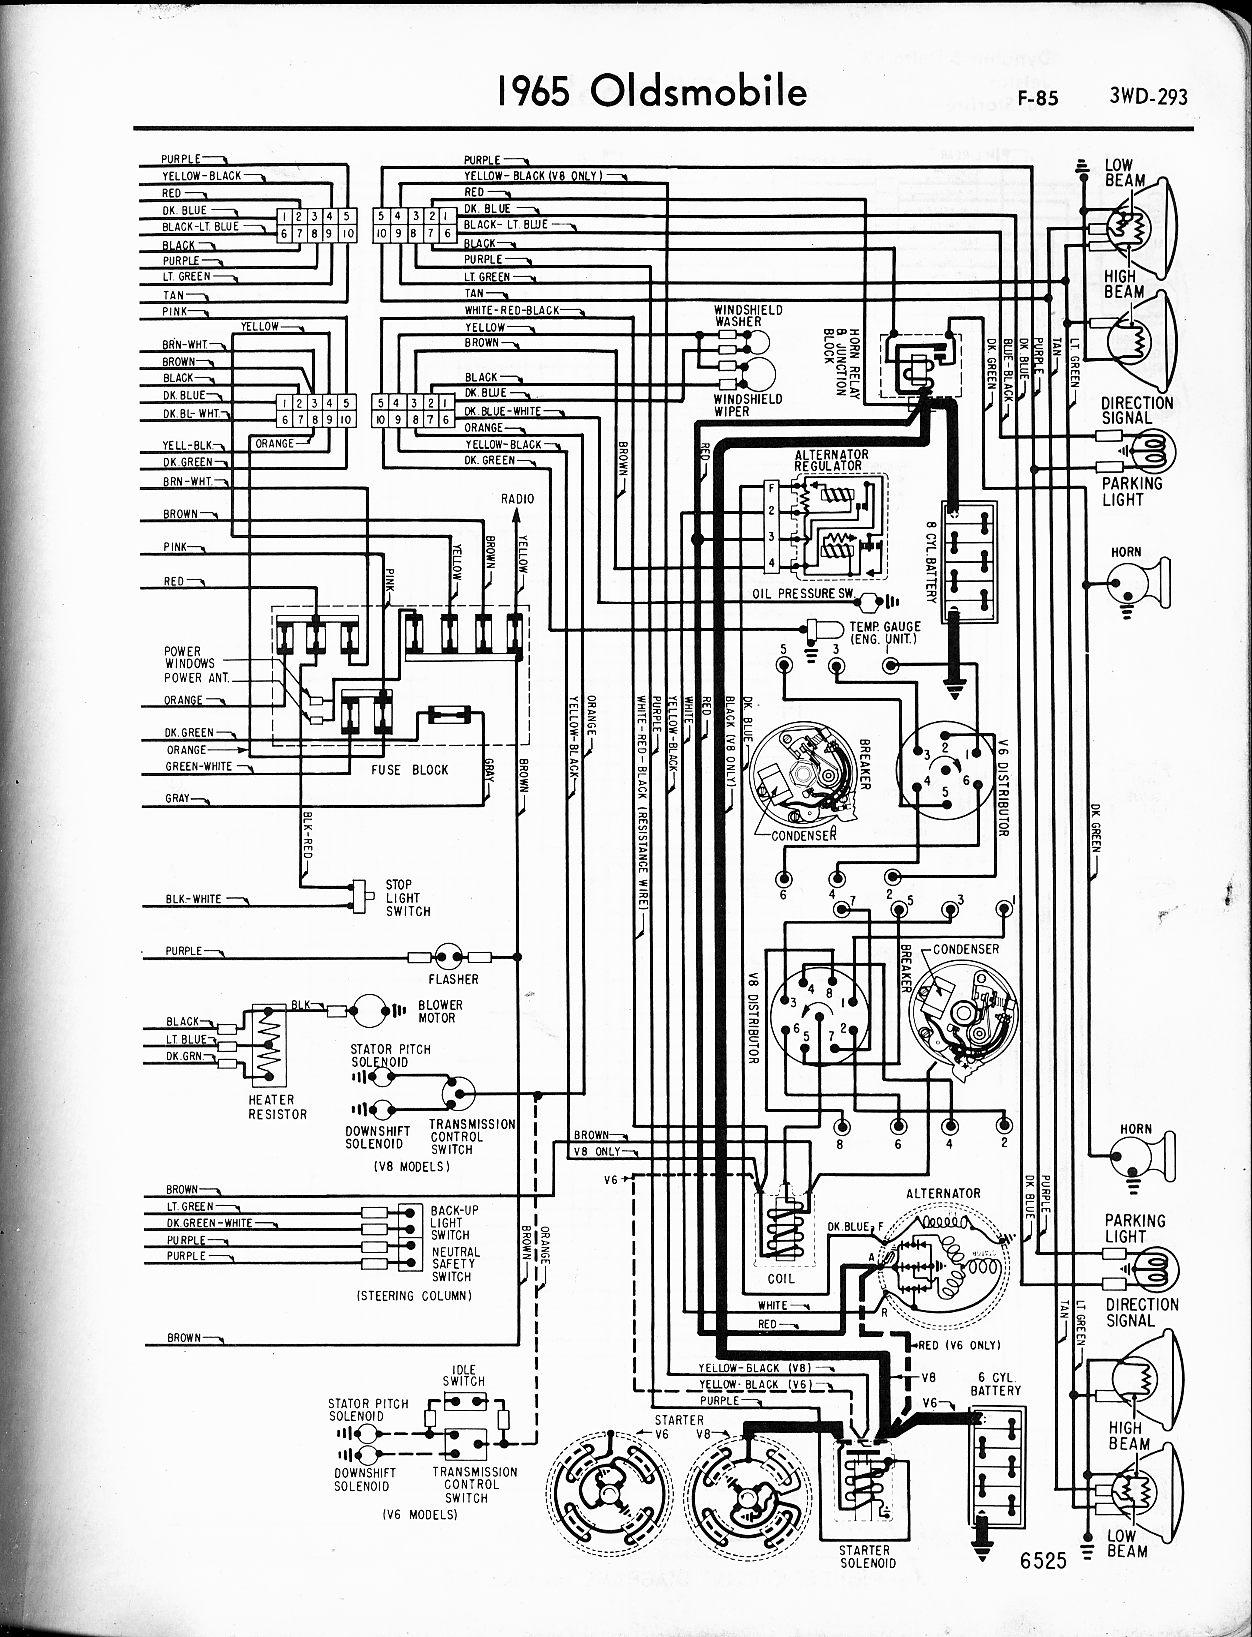 1971 camaro wiring diagram Collection-oldsmobile wiring diagrams the old car manual project rh oldcarmanualproject 1974 Oldsmobile Ninety Eight Coupe 1971 Oldsmobile Omega 5-c